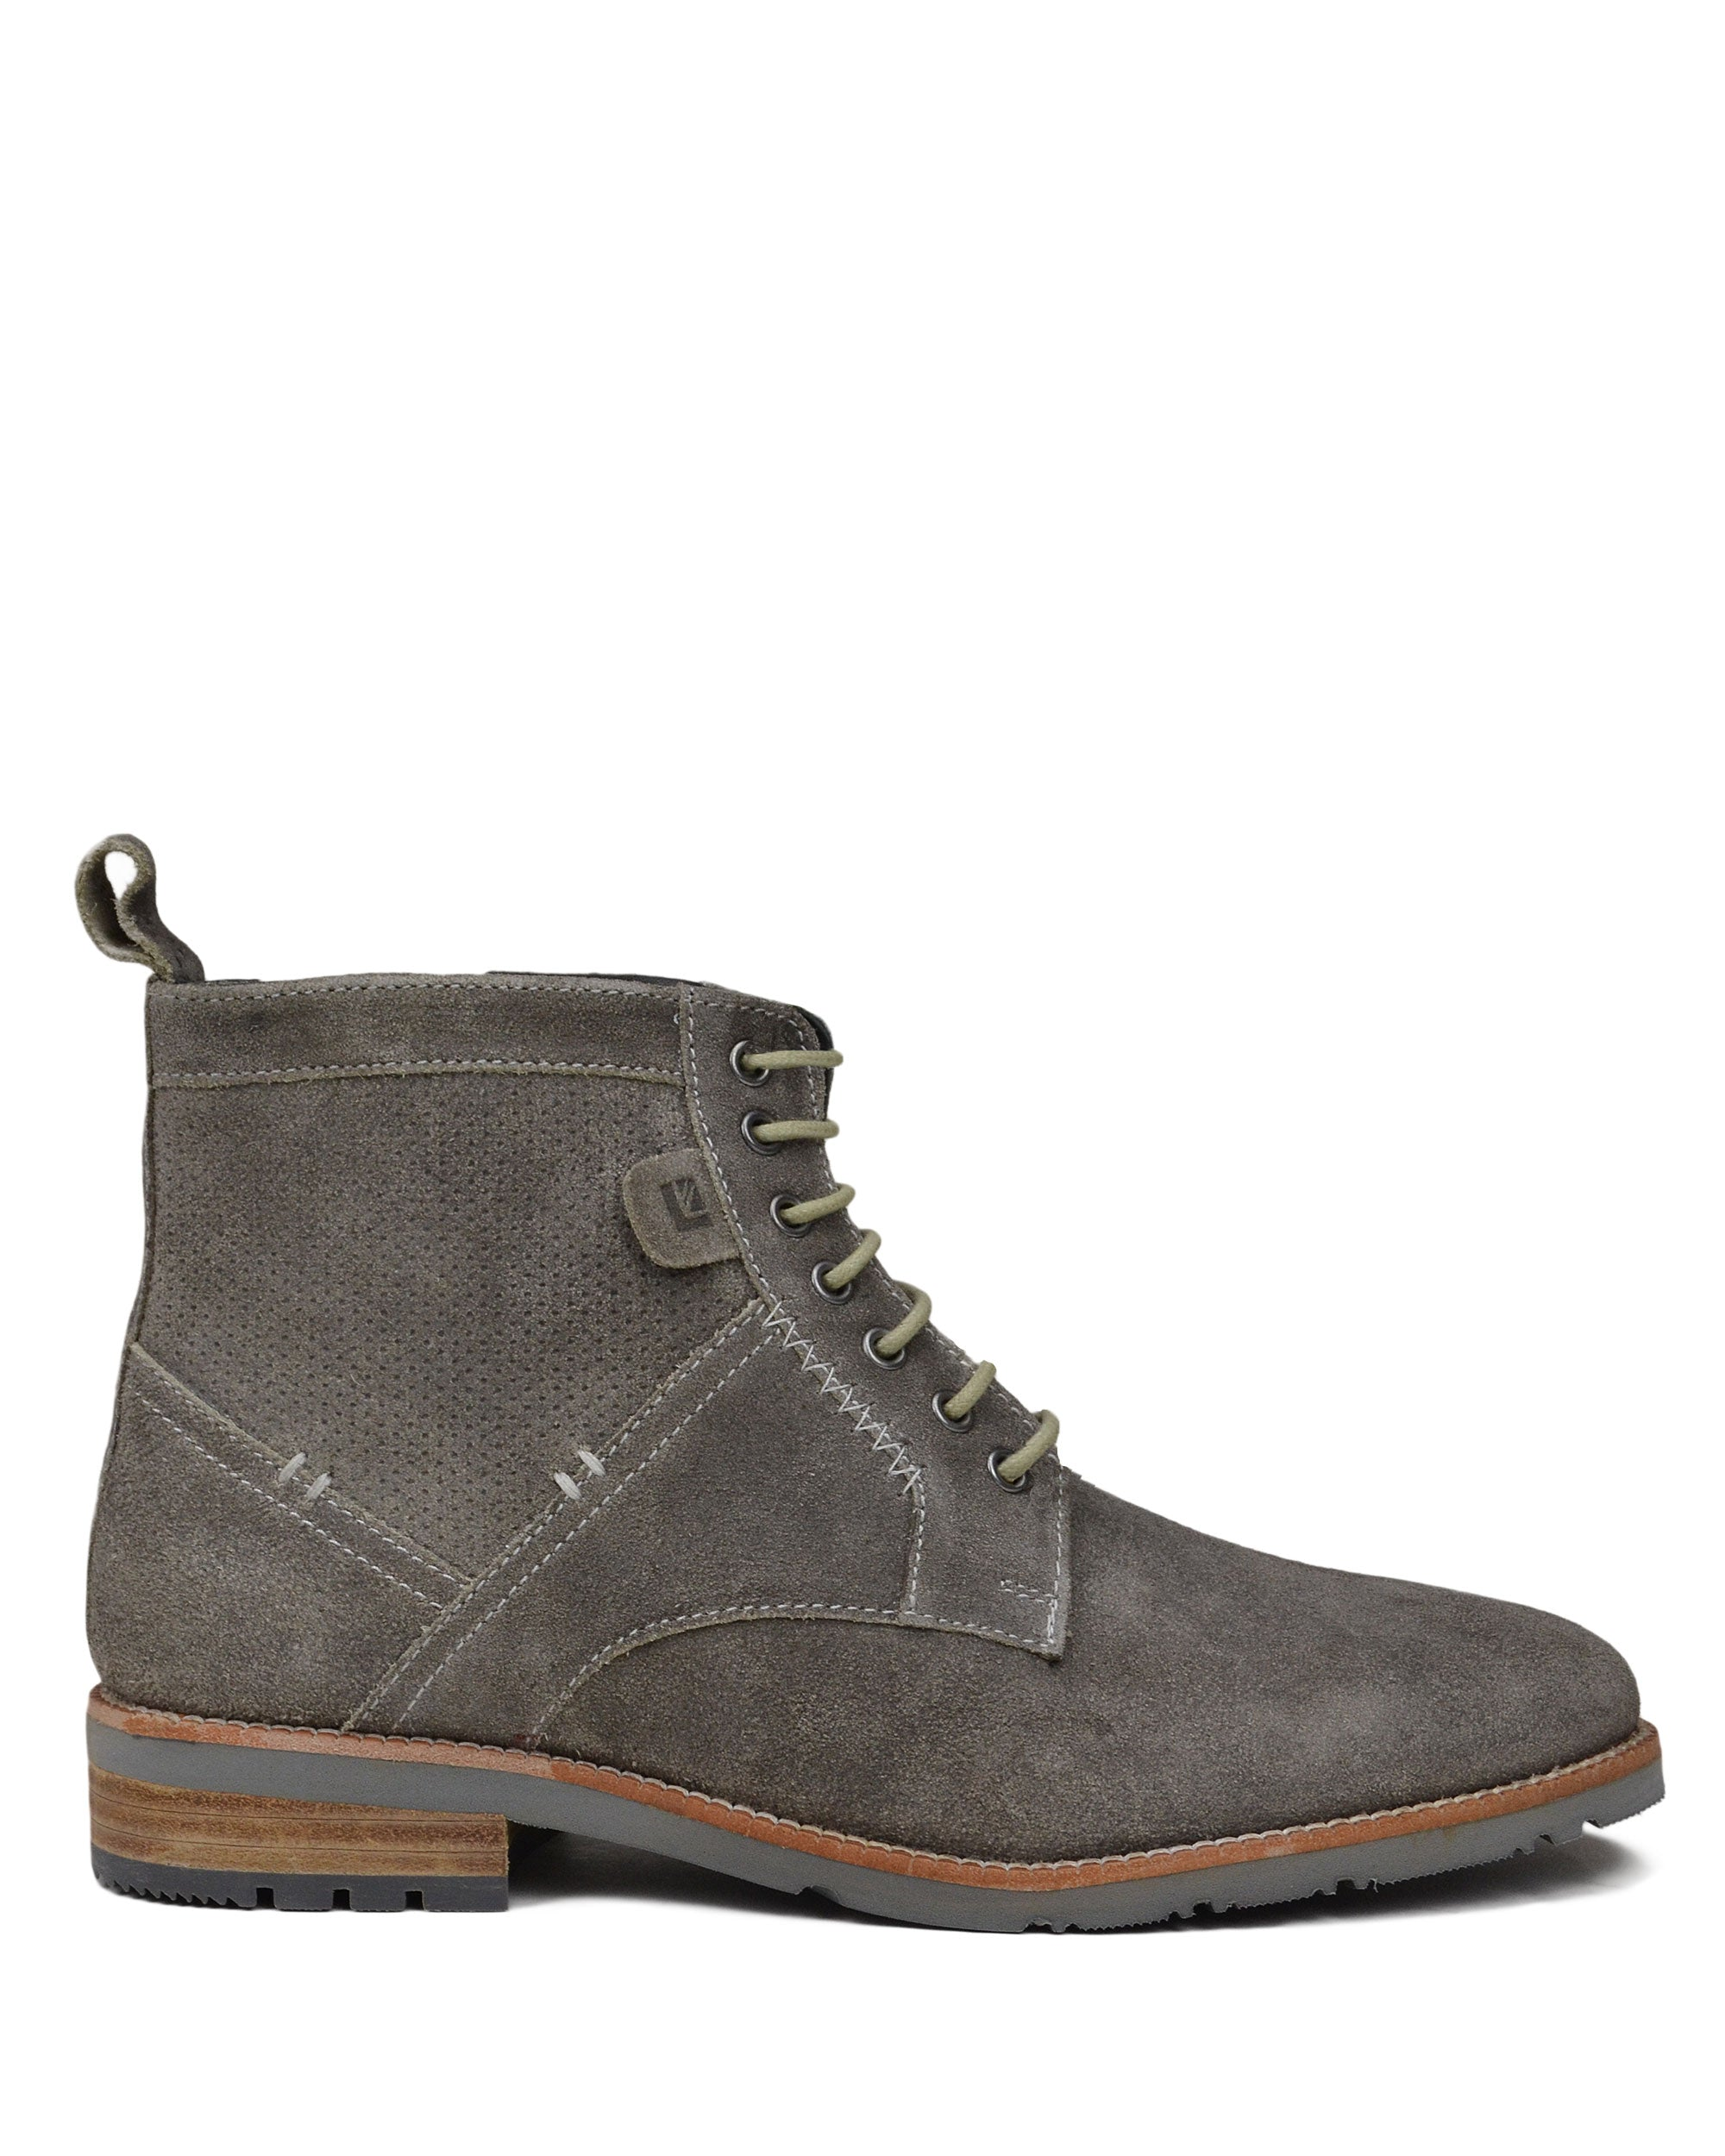 Rugged Perf Distressed Oiled-Leather Boot - Grey